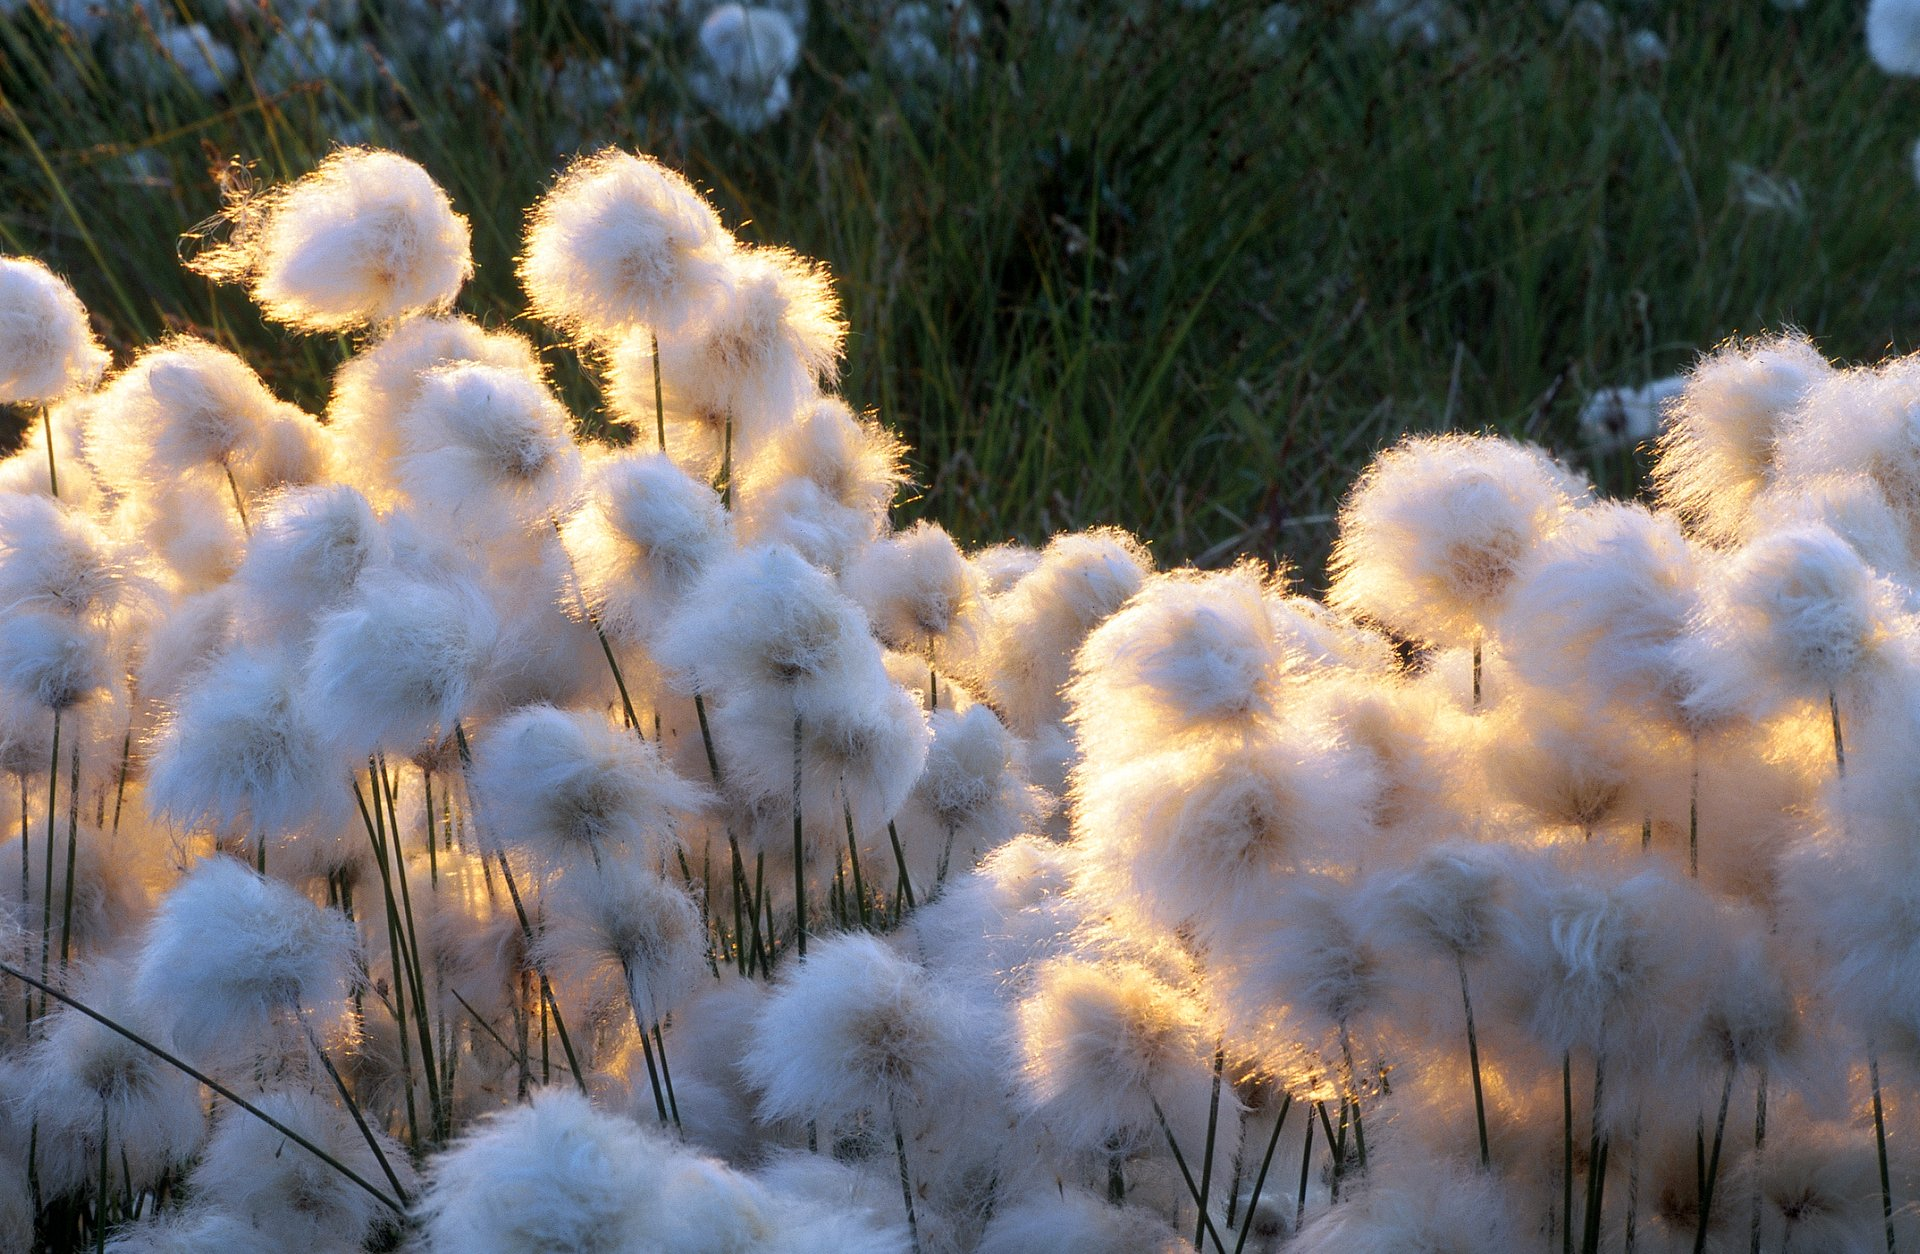 Cottongrass. Summer flowers in Lapland